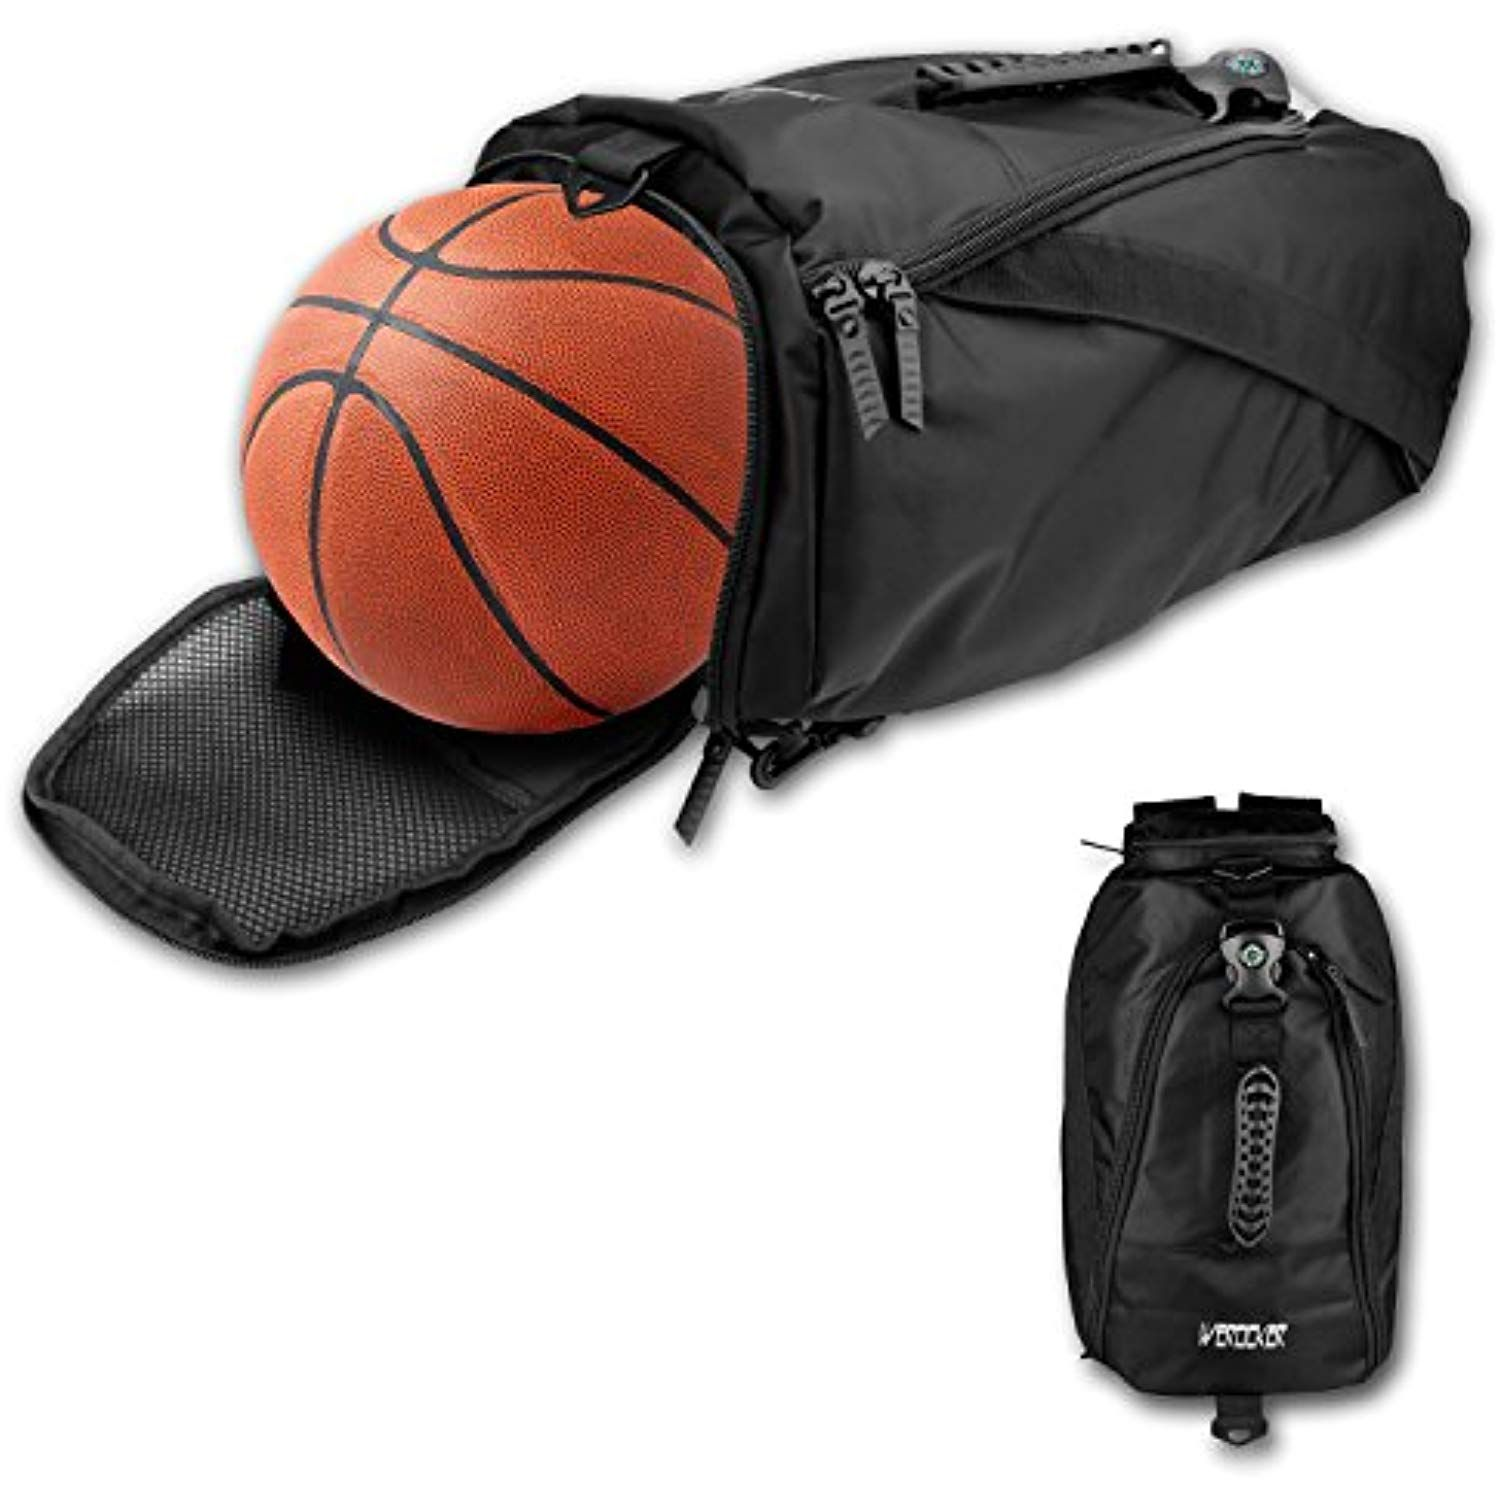 3b958cc67c251 Elegant Choise Fitness Sports Gym Bag